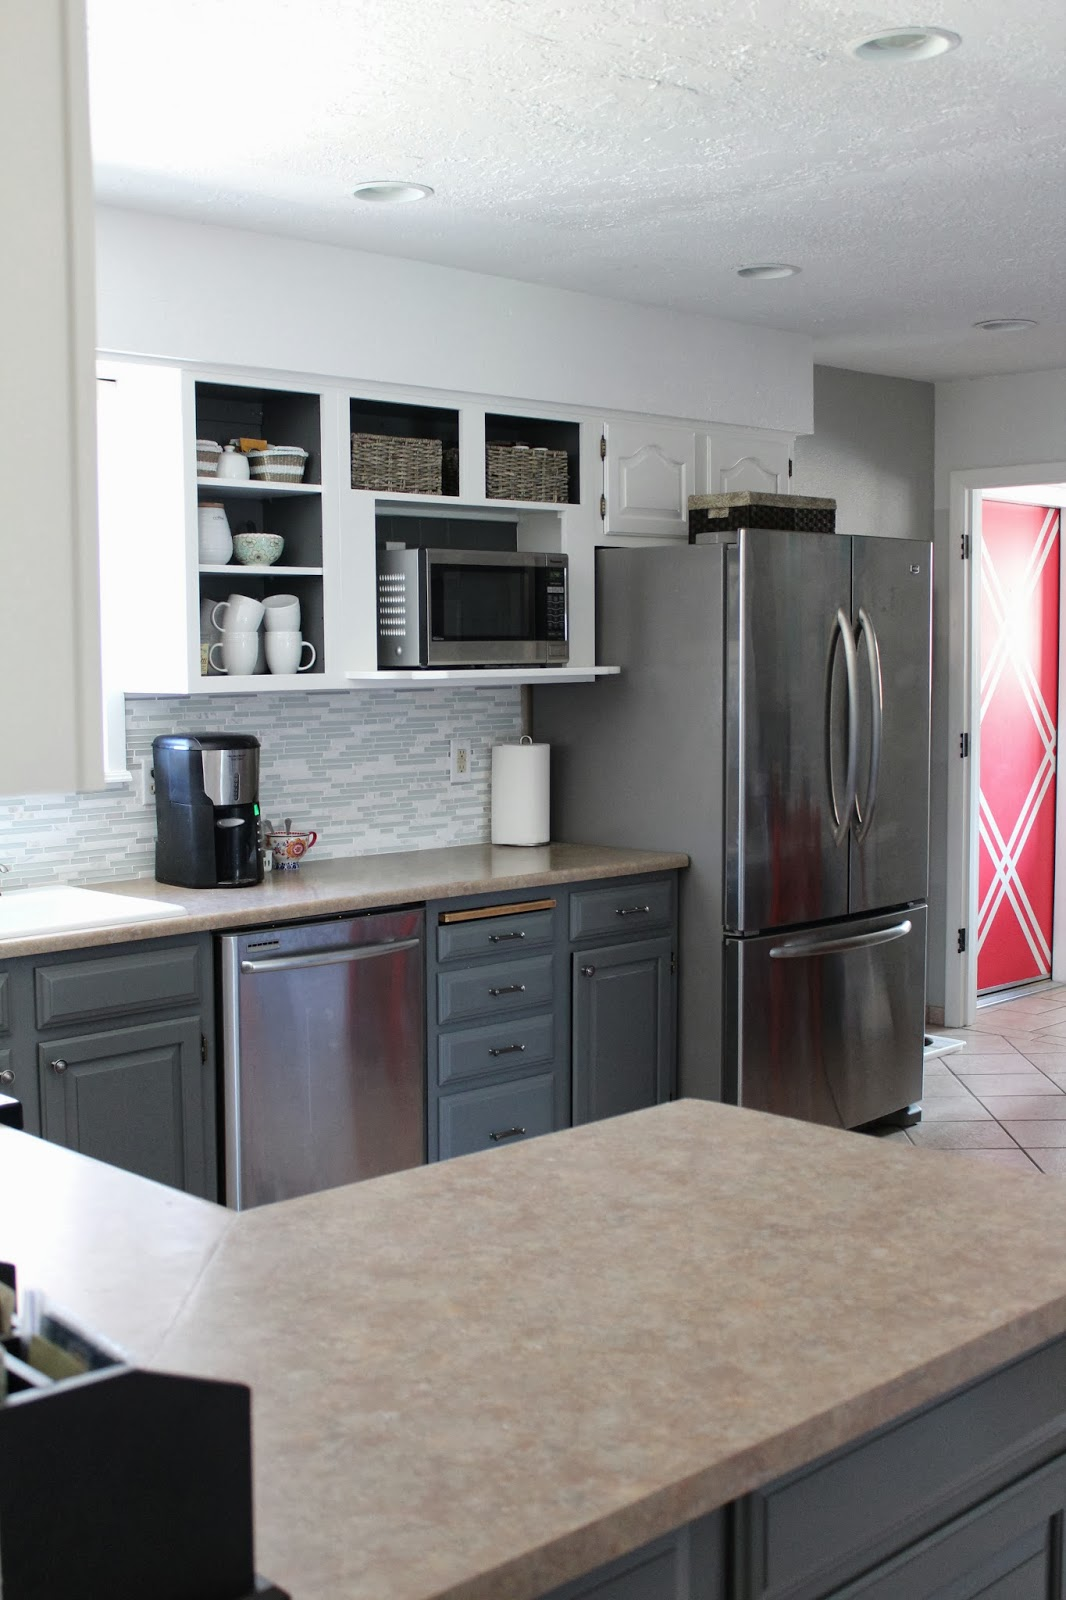 Black And White Kitchen Cabinets white and gray kitchen cabinets best 25+ gray and white kitchen